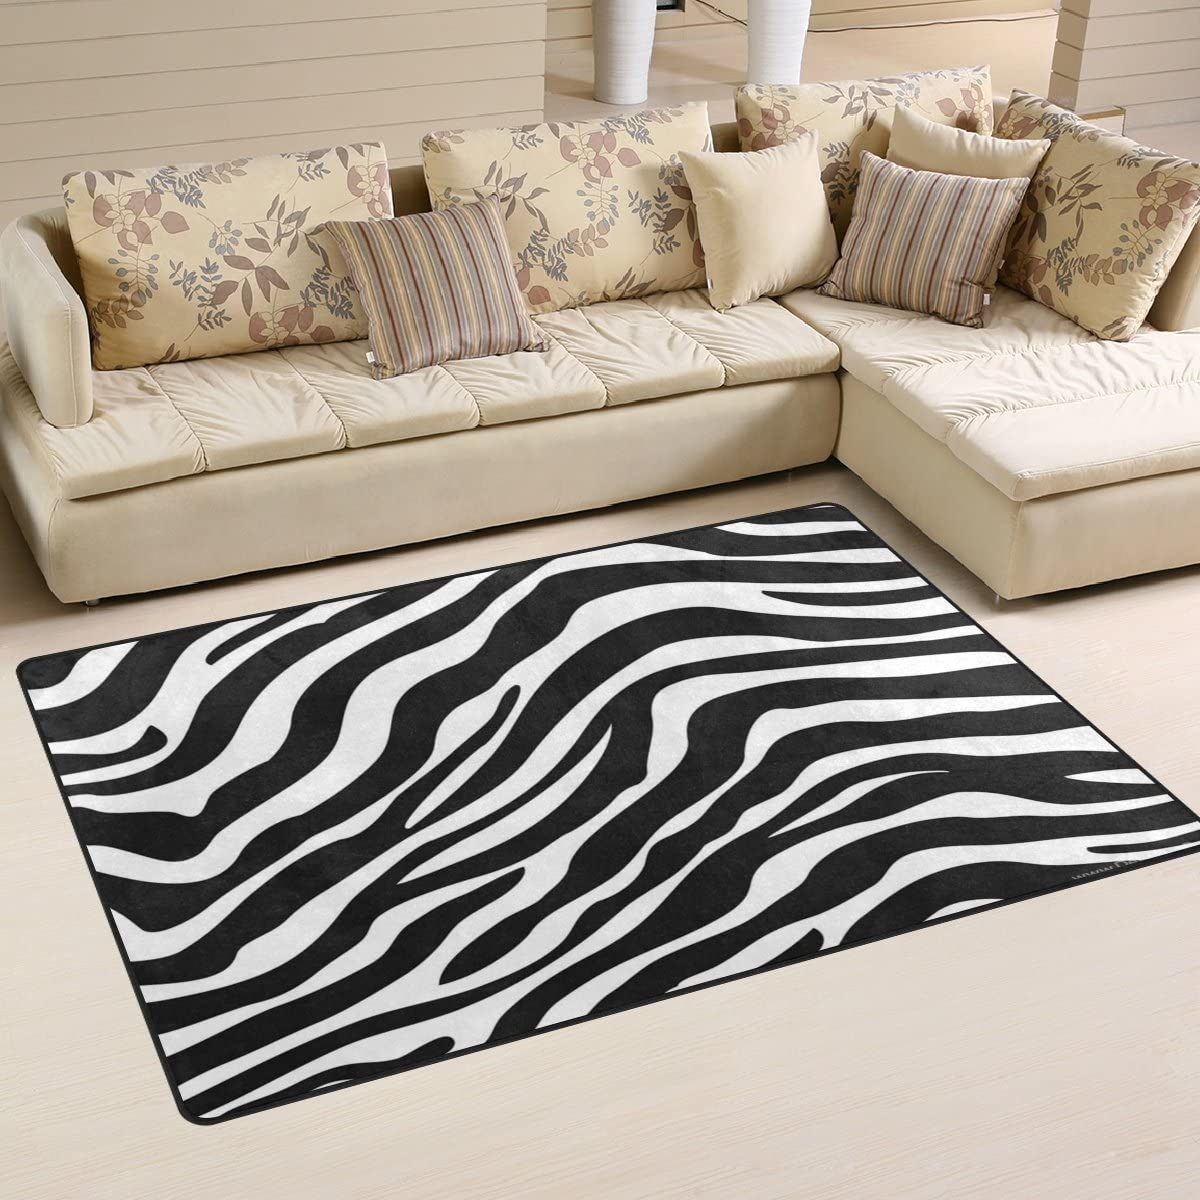 TSWEETHOME Doormat Area Rugs Outdoor Inside Mats Personalized Welcome Mats with Skin Zebra Print for Chair Mat and Decorative Floor Mat for Office and Home 31 x 20 in 60 x 39 in